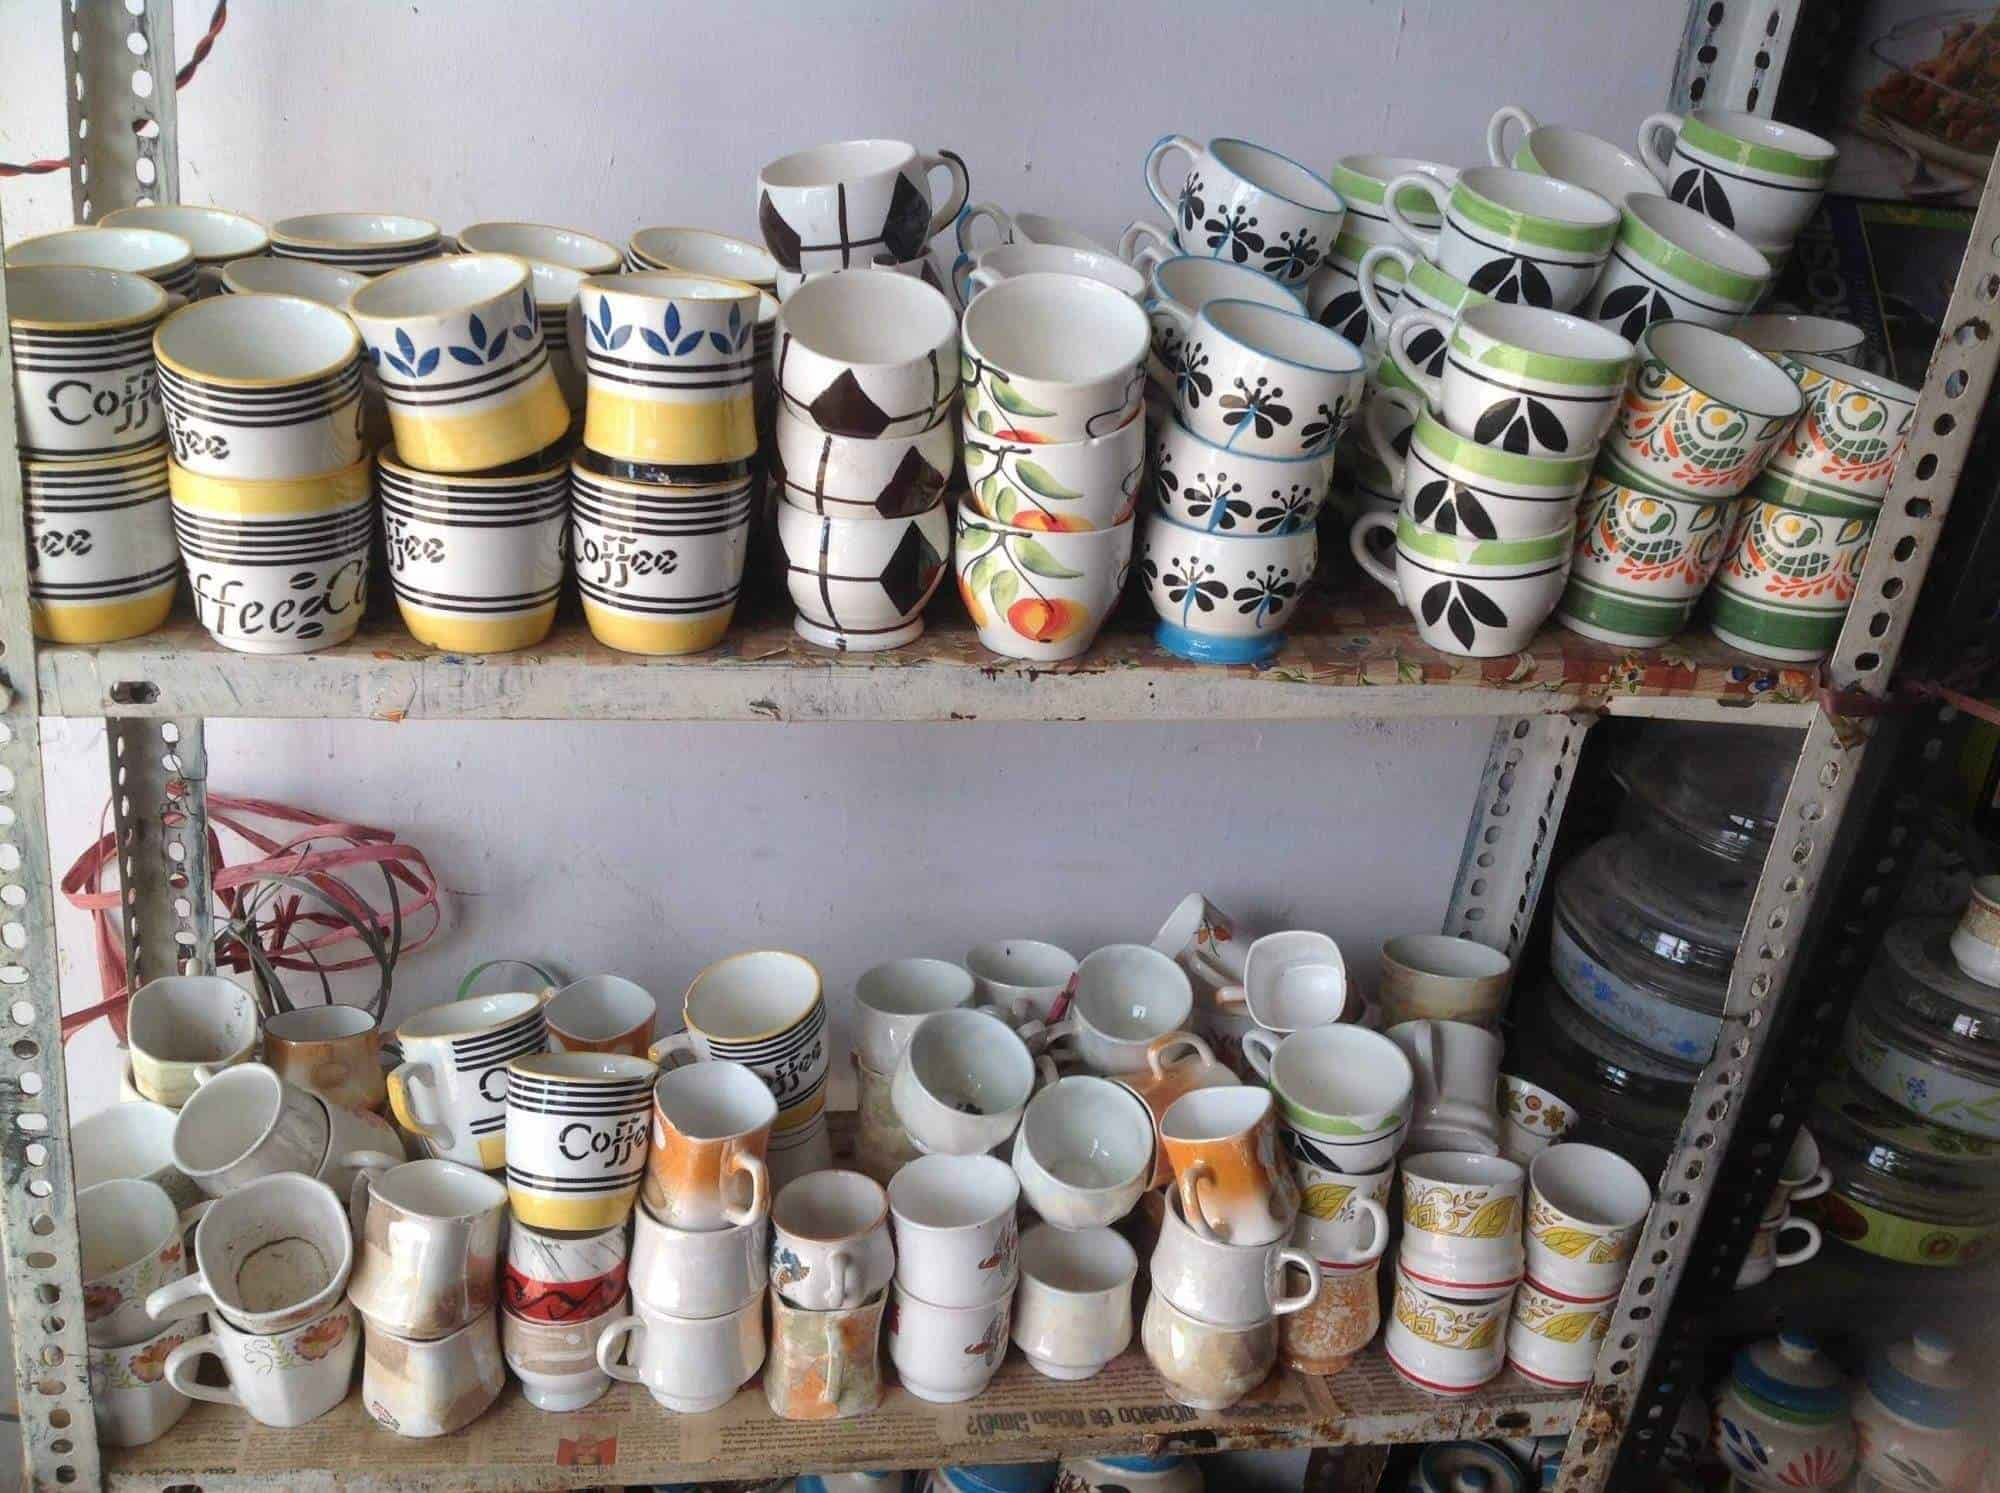 Yousuf & Son Crockery Items, Mehdipatnam - Gift Article Dealers in